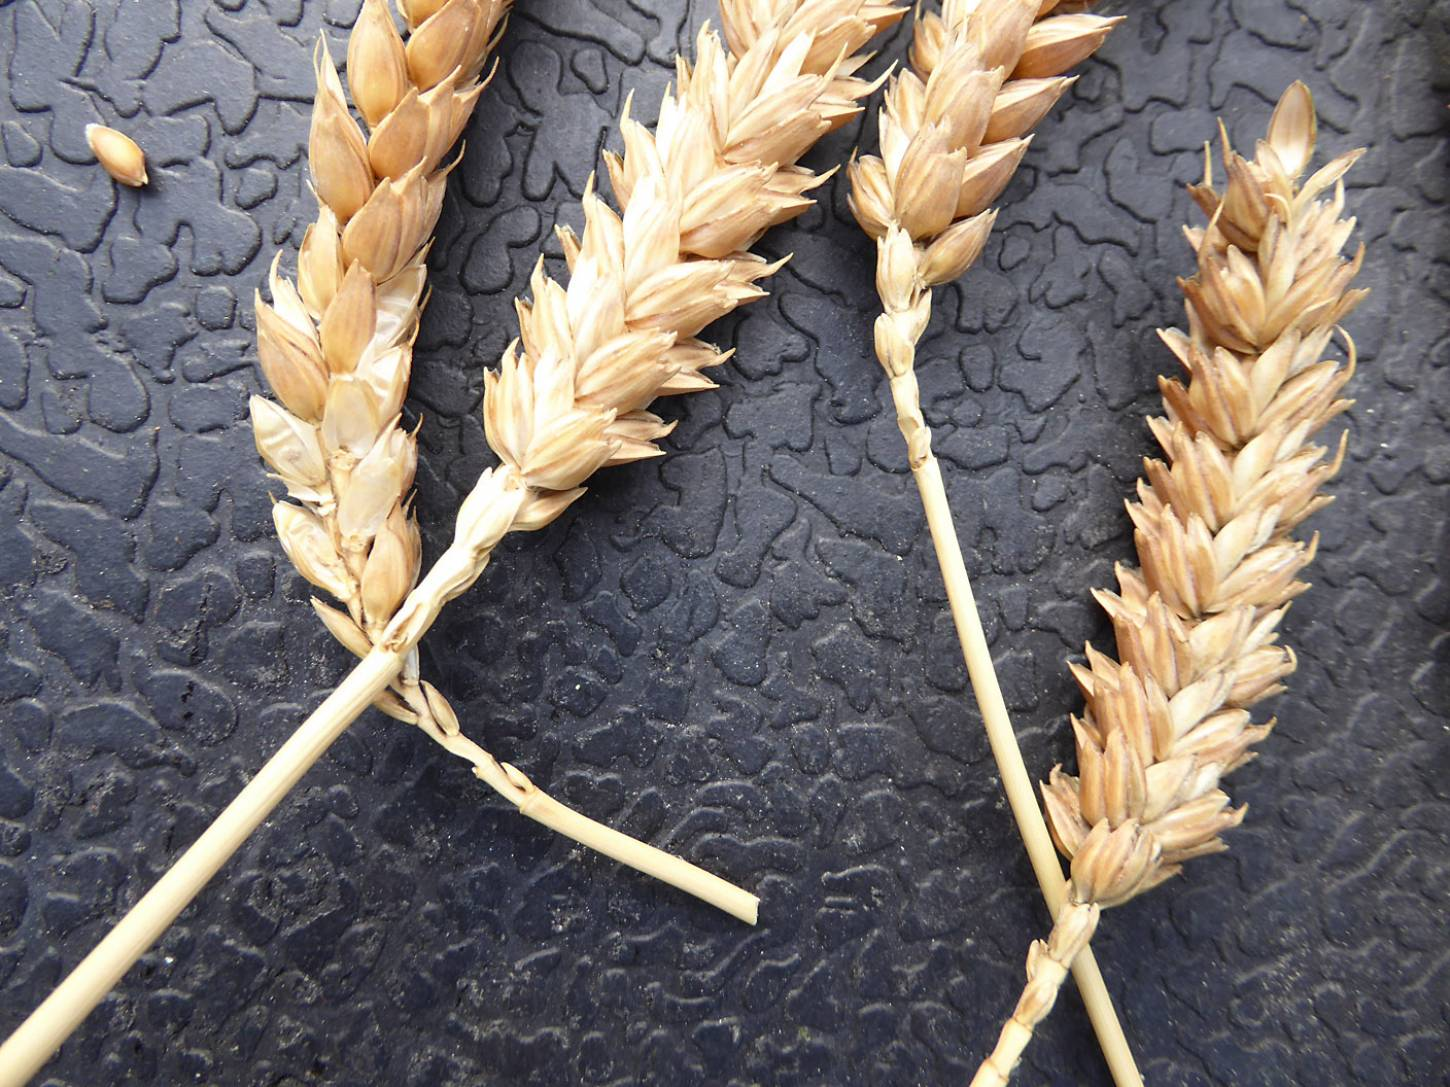 wheat identification images for <a href='http://brockwell-bake.org.uk/wheat/search.php?send=1&ID=109296&genes=1&bunt_a=1' target='_blank'>Red Dan(t)zig</a> - 6:02pm&nbsp;3<sup>rd</sup>&nbsp;Aug.&nbsp;'17